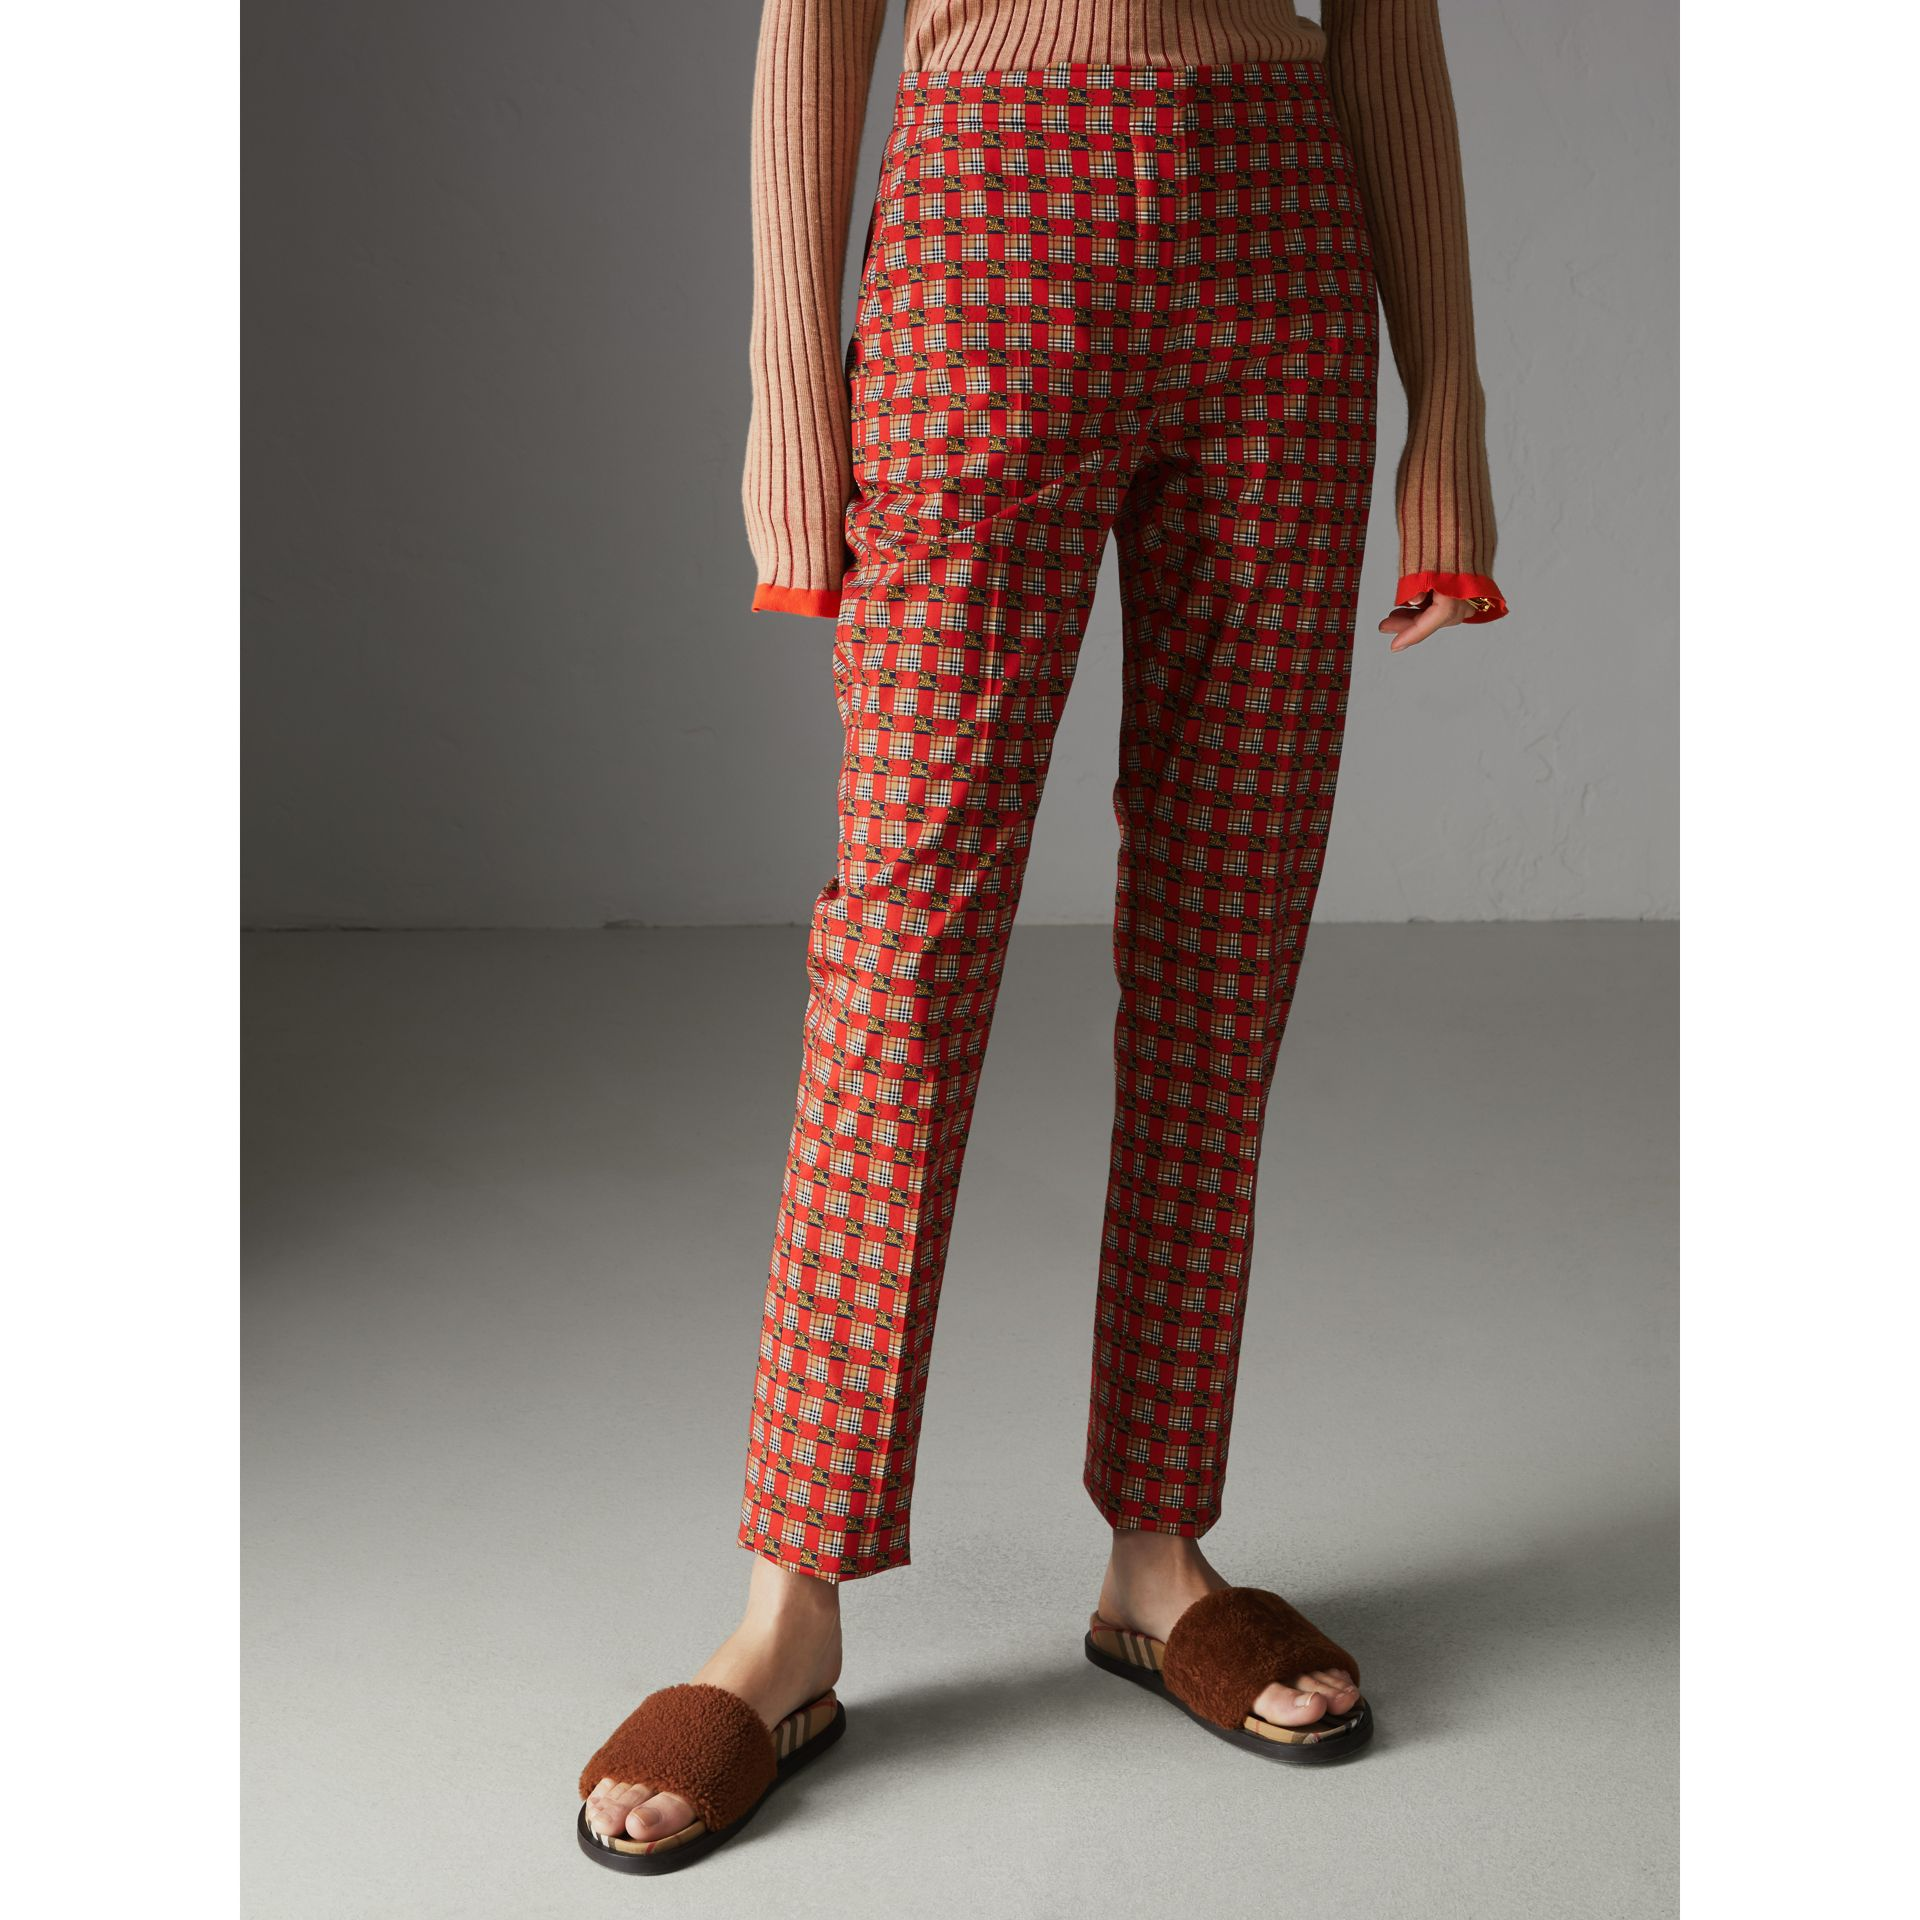 Tiled Archive Print Stretch Cotton Cigarette Trousers in Orange Red - Women | Burberry United States - gallery image 4